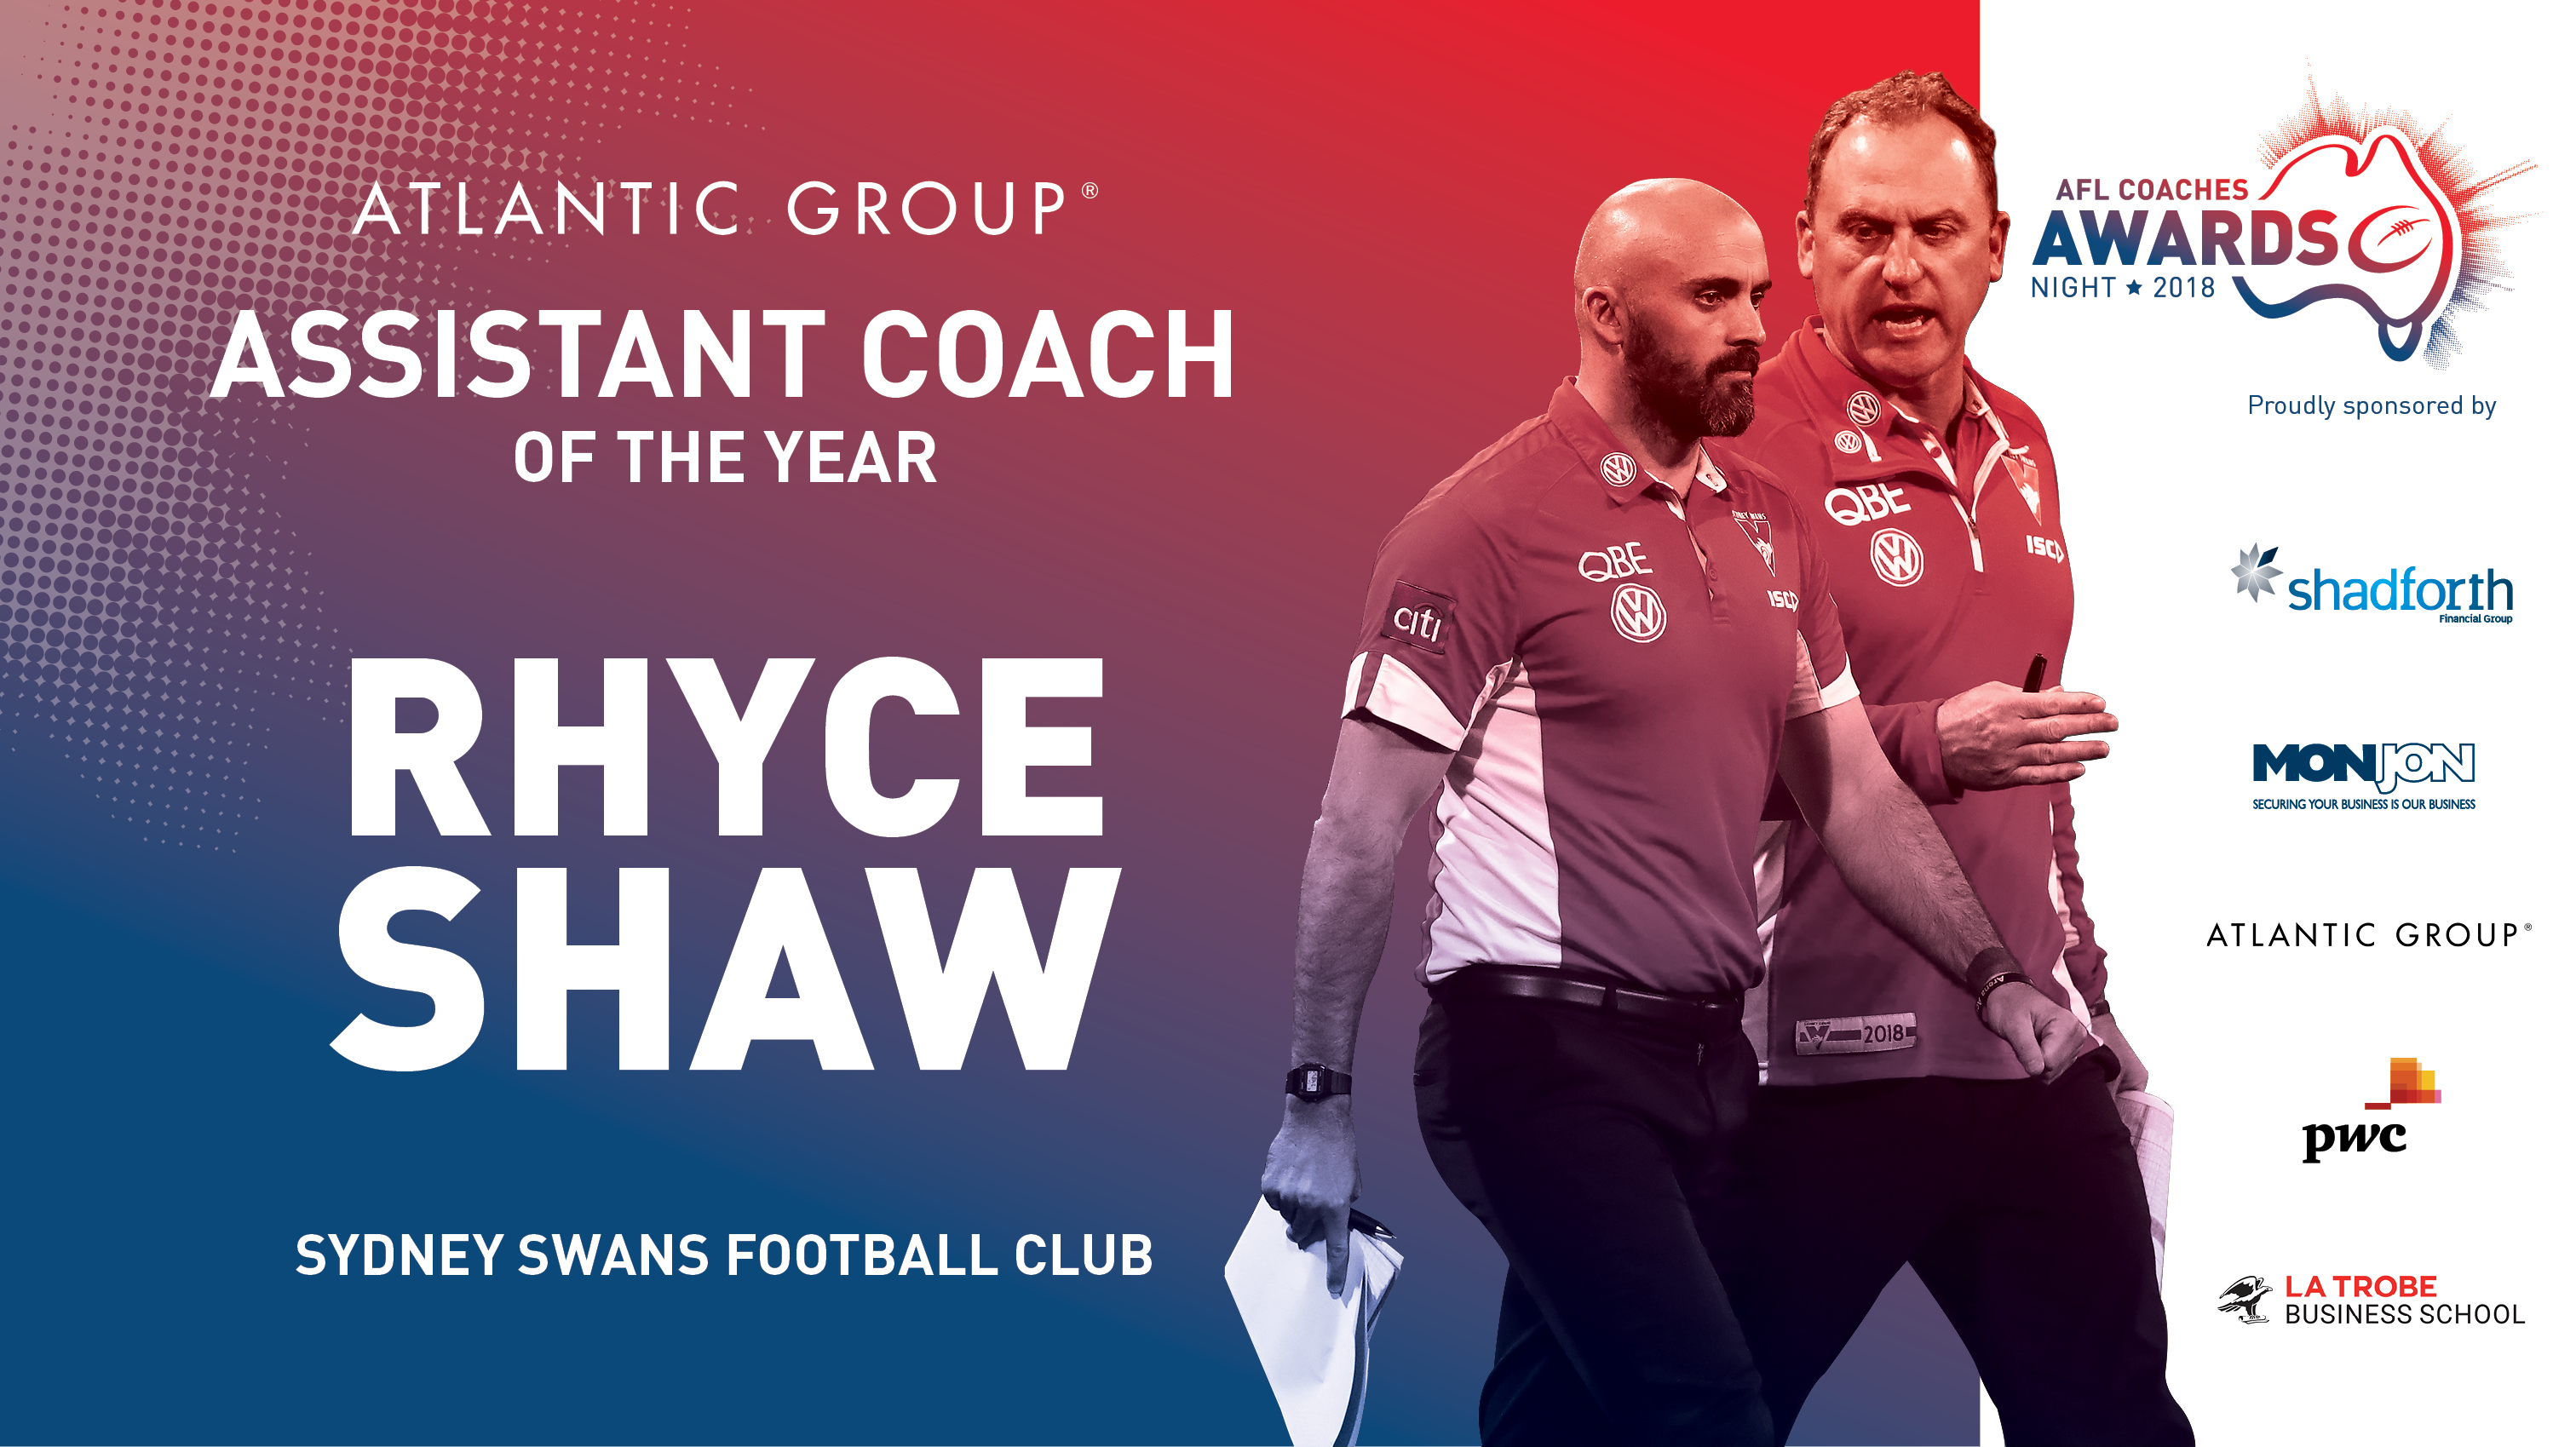 Atlantic Group Assistant Coach of the Year